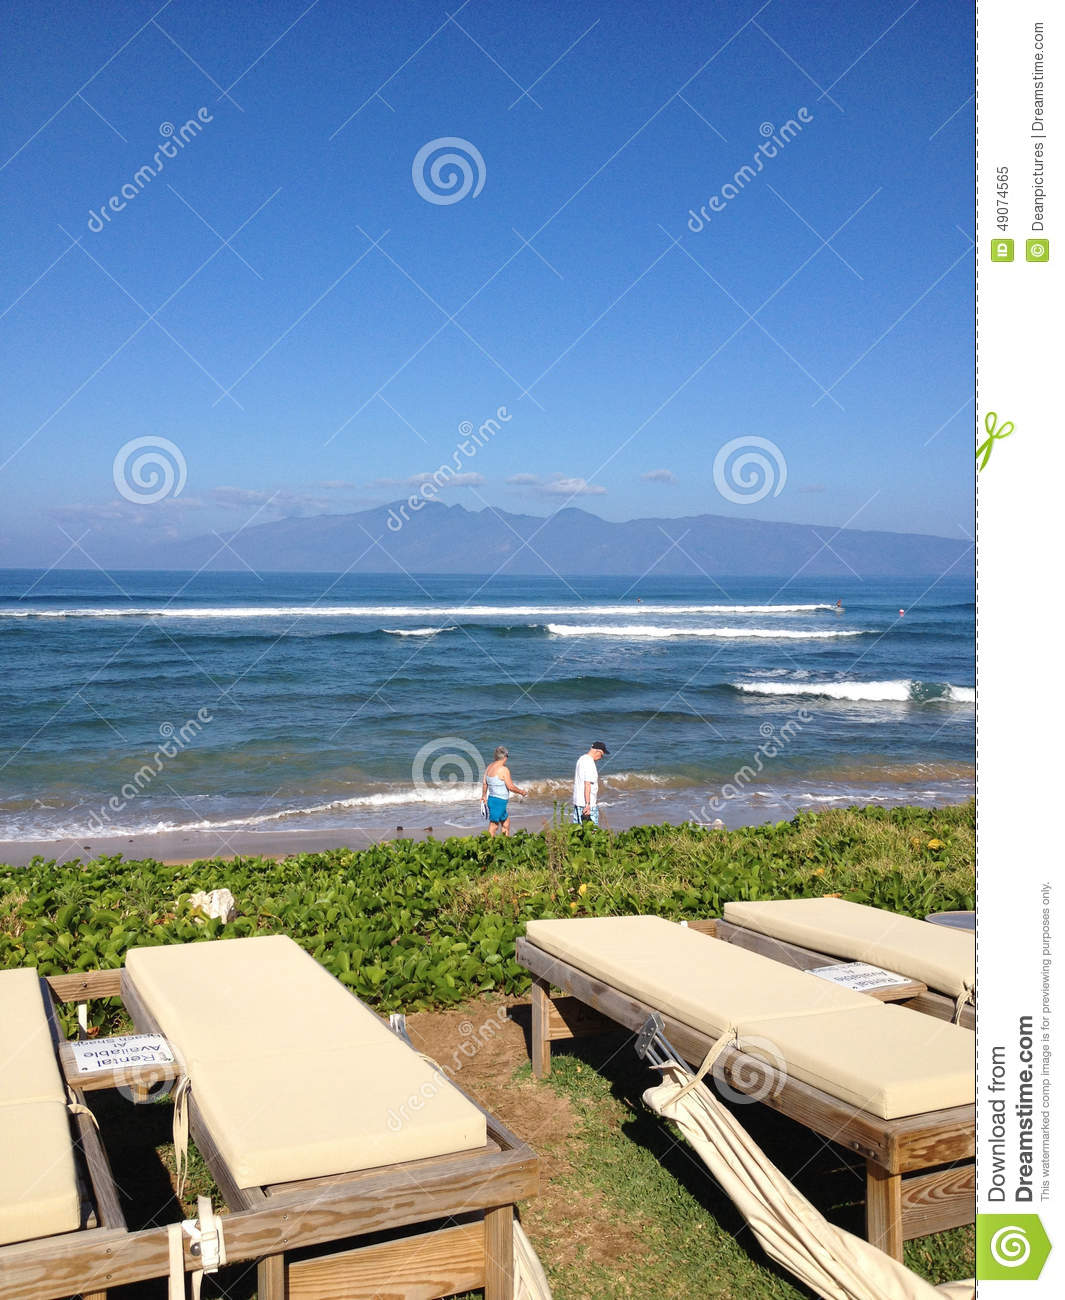 Island Beach People: OCEAN AND RESORTS Editorial Image. Image Of Holiday